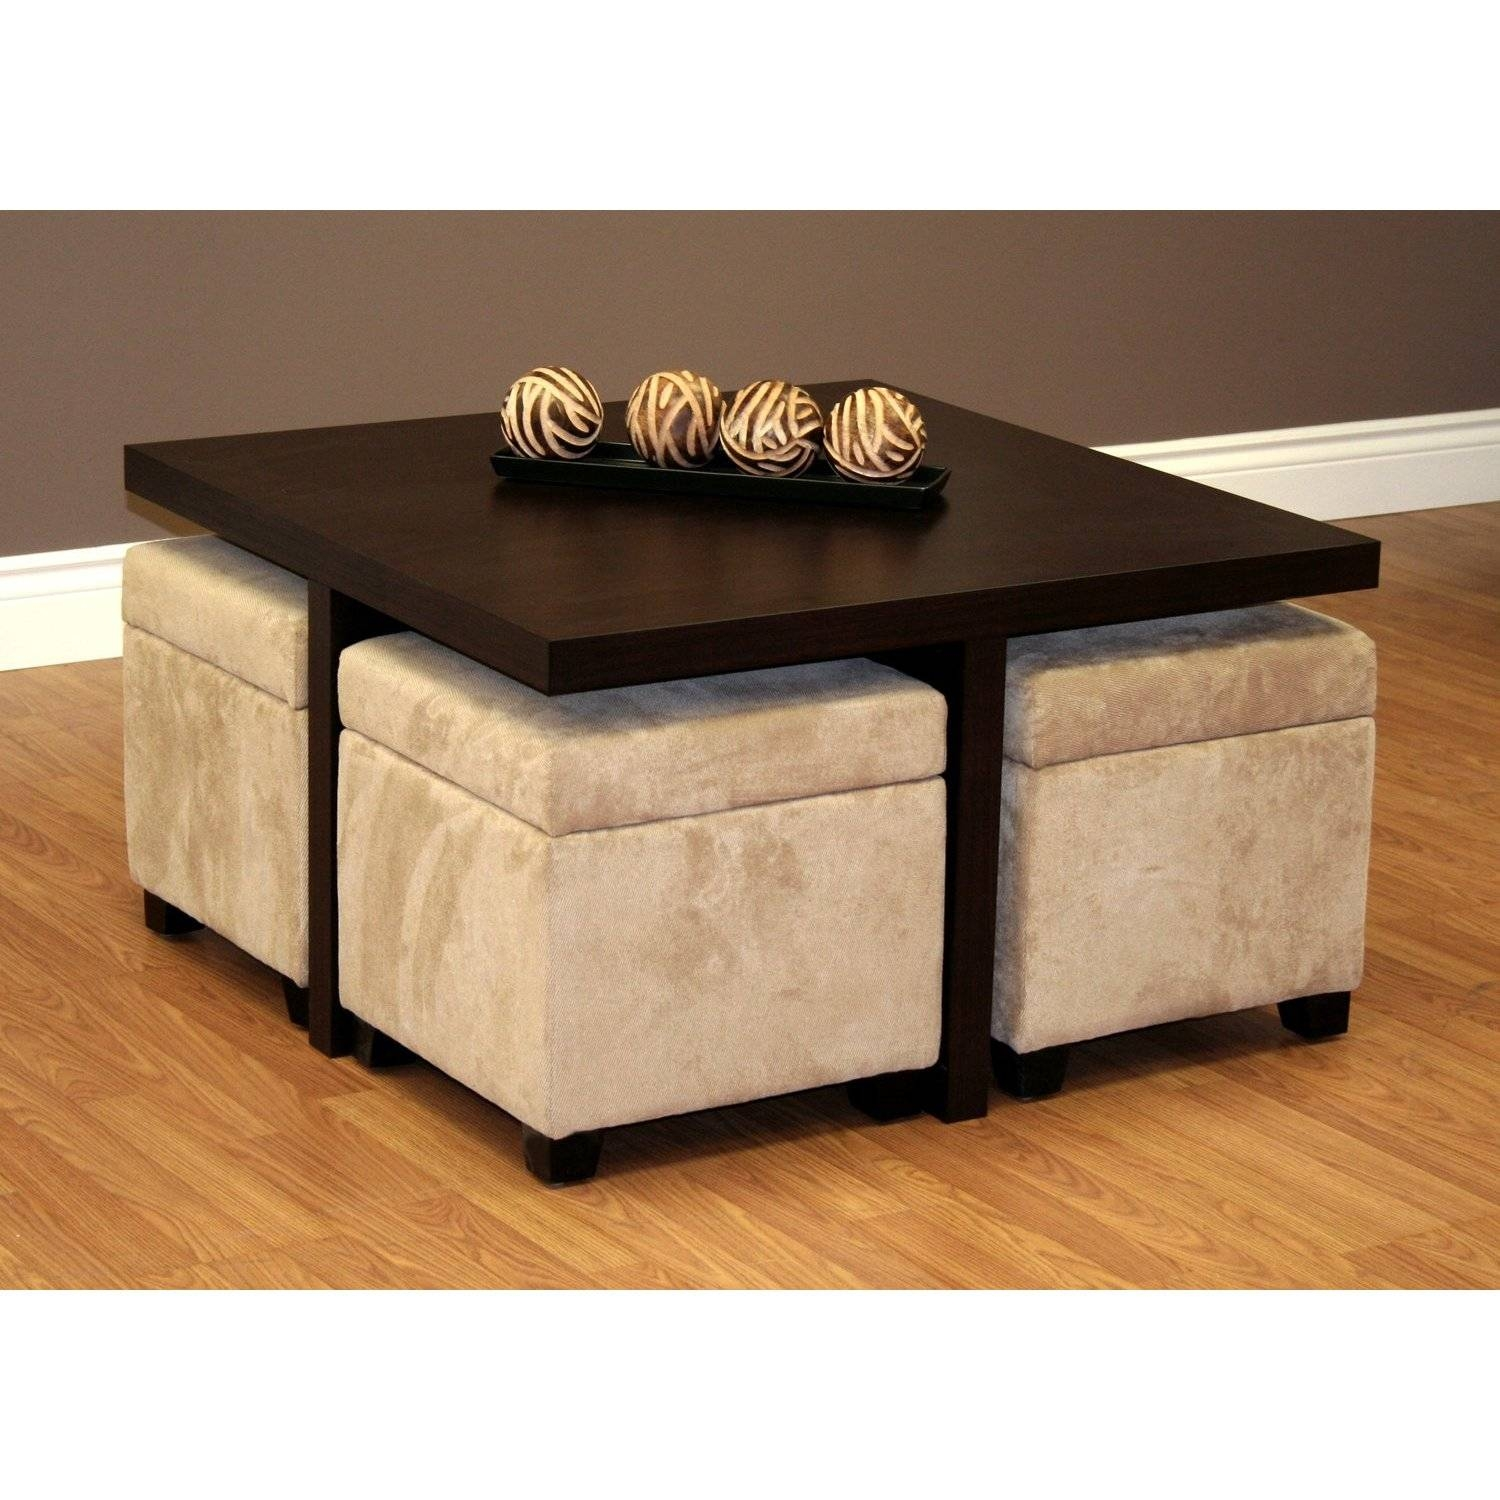 Furniture: Luxury Coffee Table With Stools For Living Room pertaining to Square Dark Wood Coffee Table (Image 20 of 30)